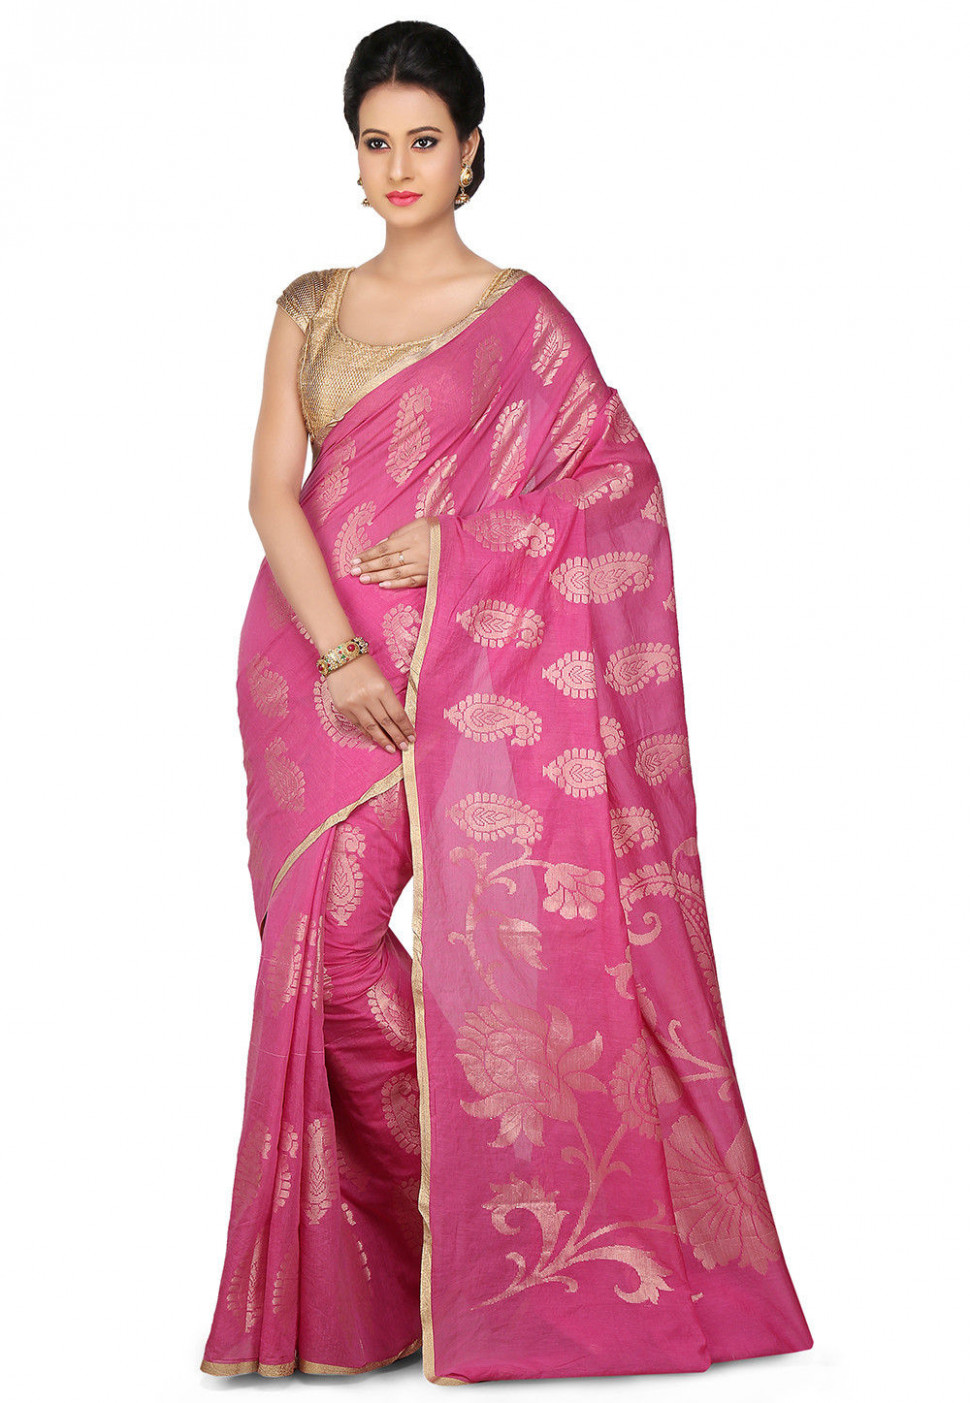 Woven Pure Chanderi Cotton Silk Saree in Pink : SNEA532